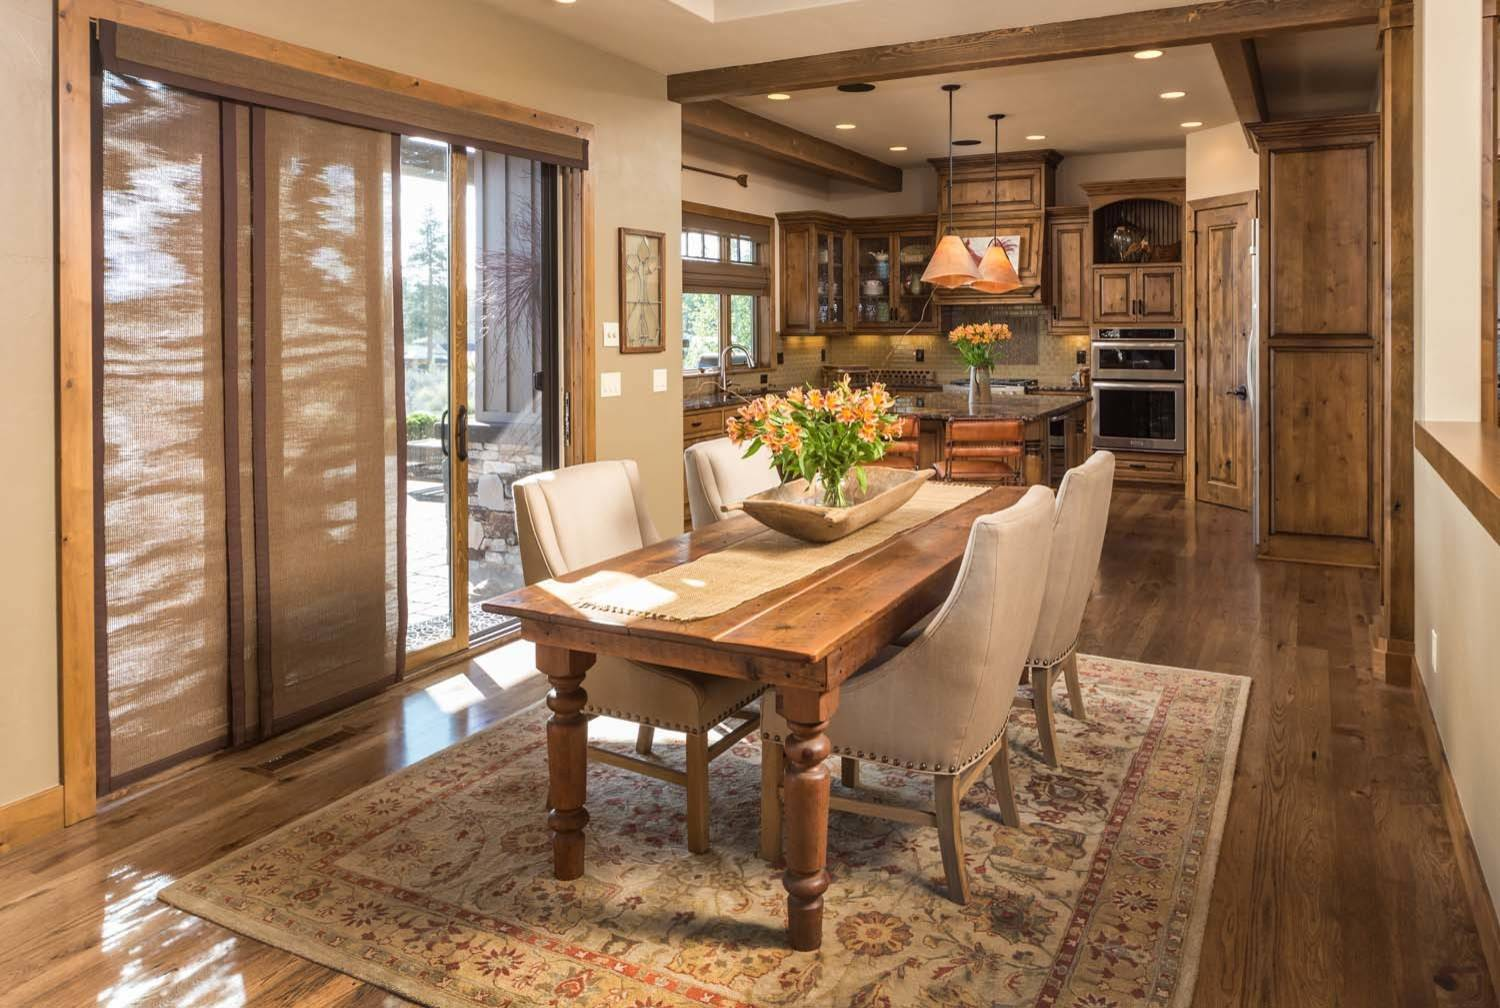 Kitchen Ideas Ranch Style House 16 Majestic Rustic Dining Room Designs You Can't Miss Out